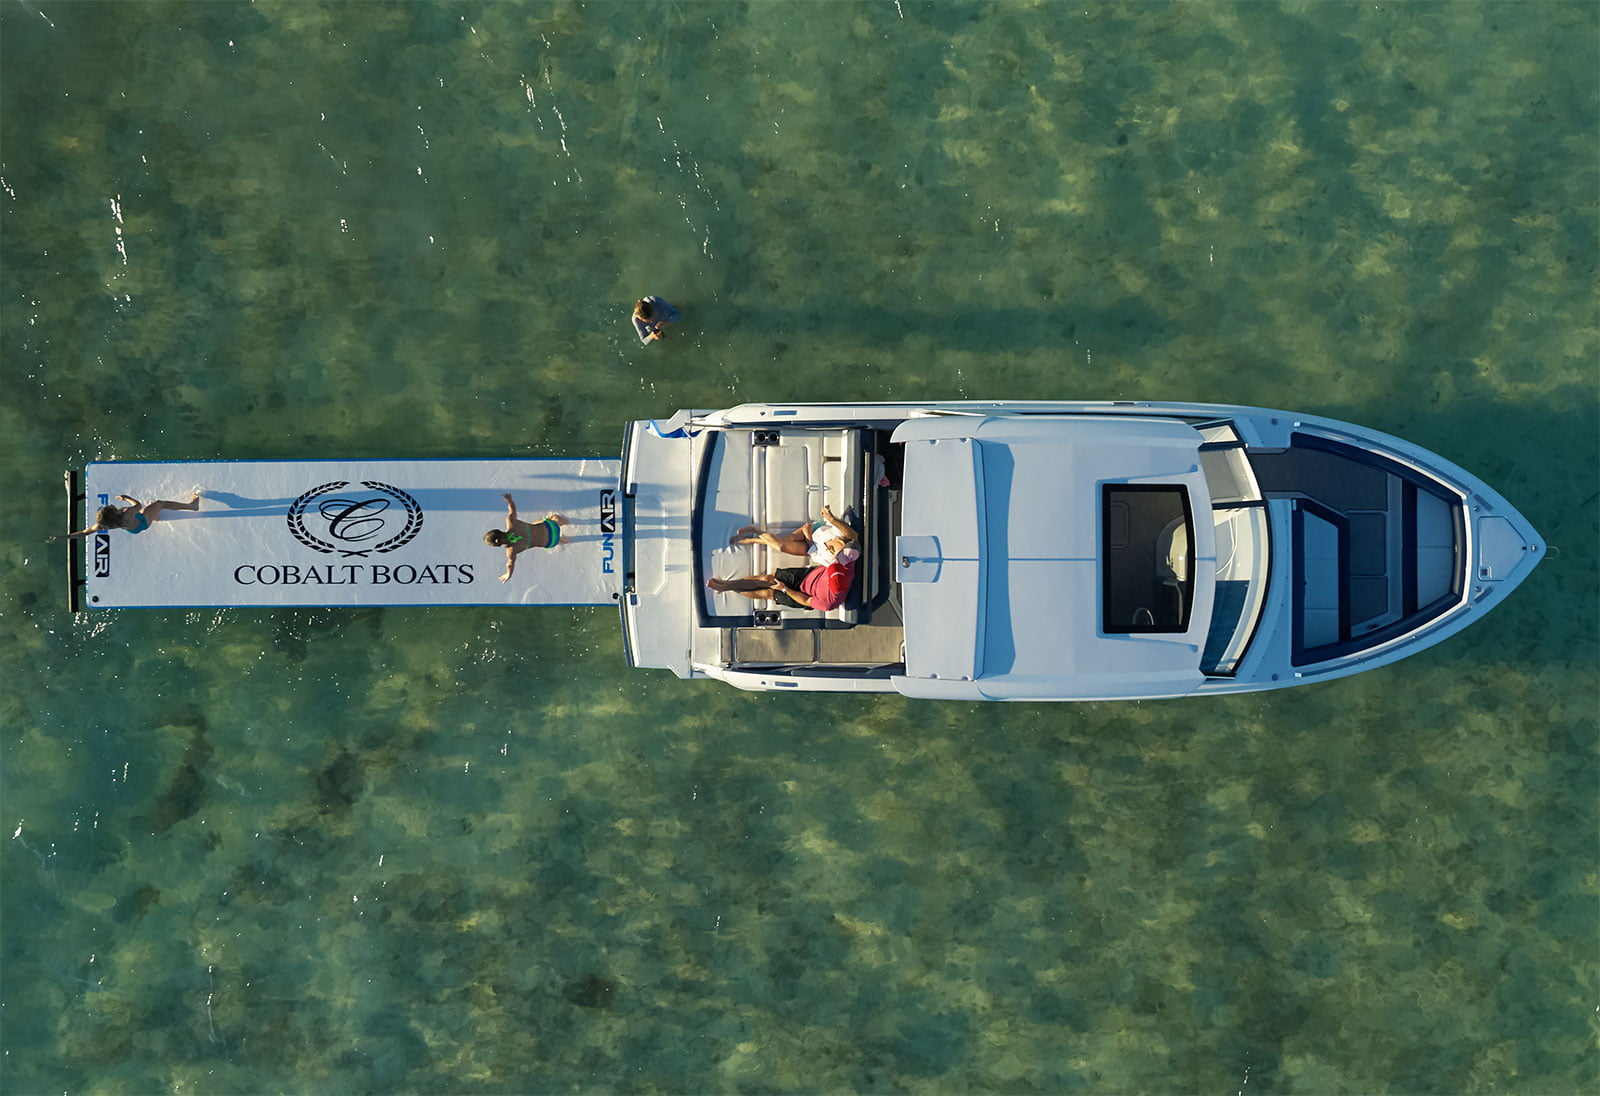 Cobalt Boats Launches Innovative A29